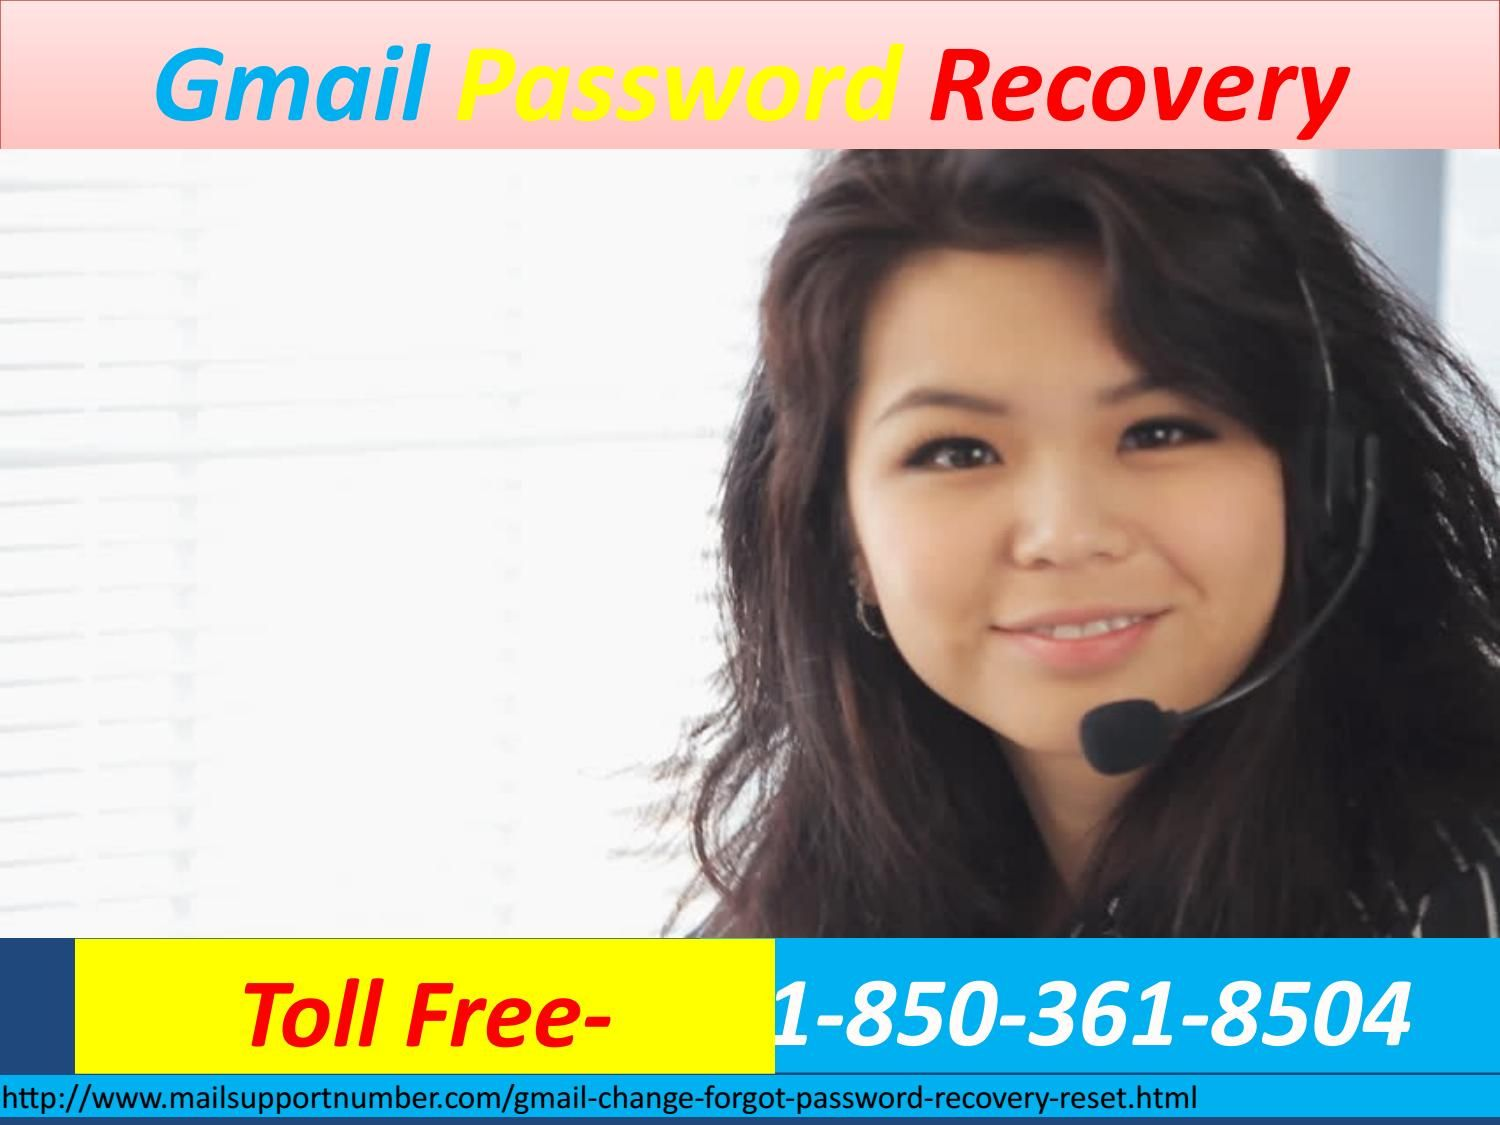 Why to avail gmail password recovery 18503618504